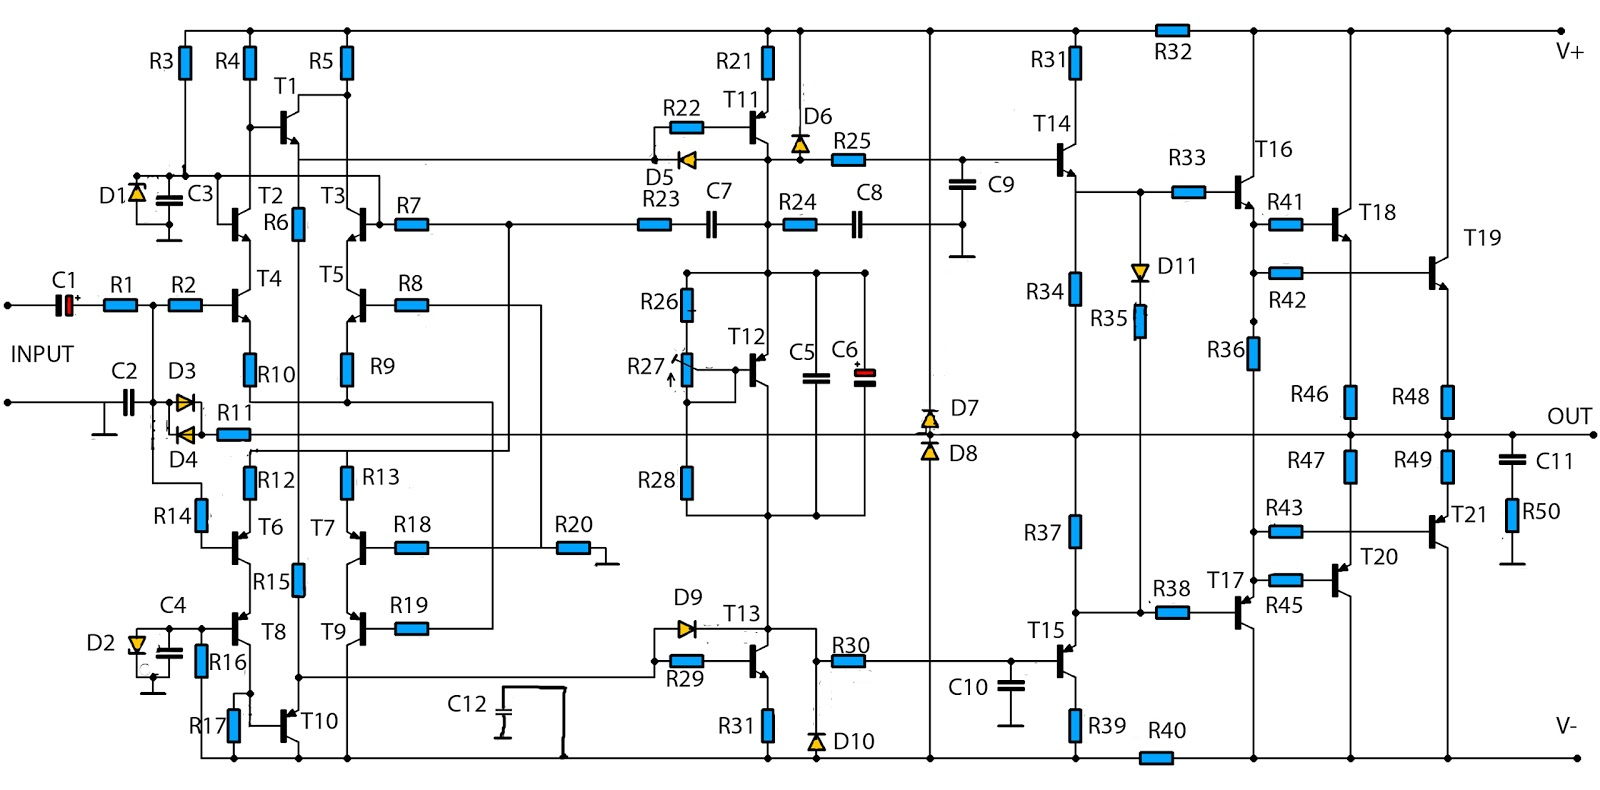 hight resolution of 1000 watt audio amplifier circuit diagrams wiring library1000w power audio amplifier circuit design 2800w power amplifier